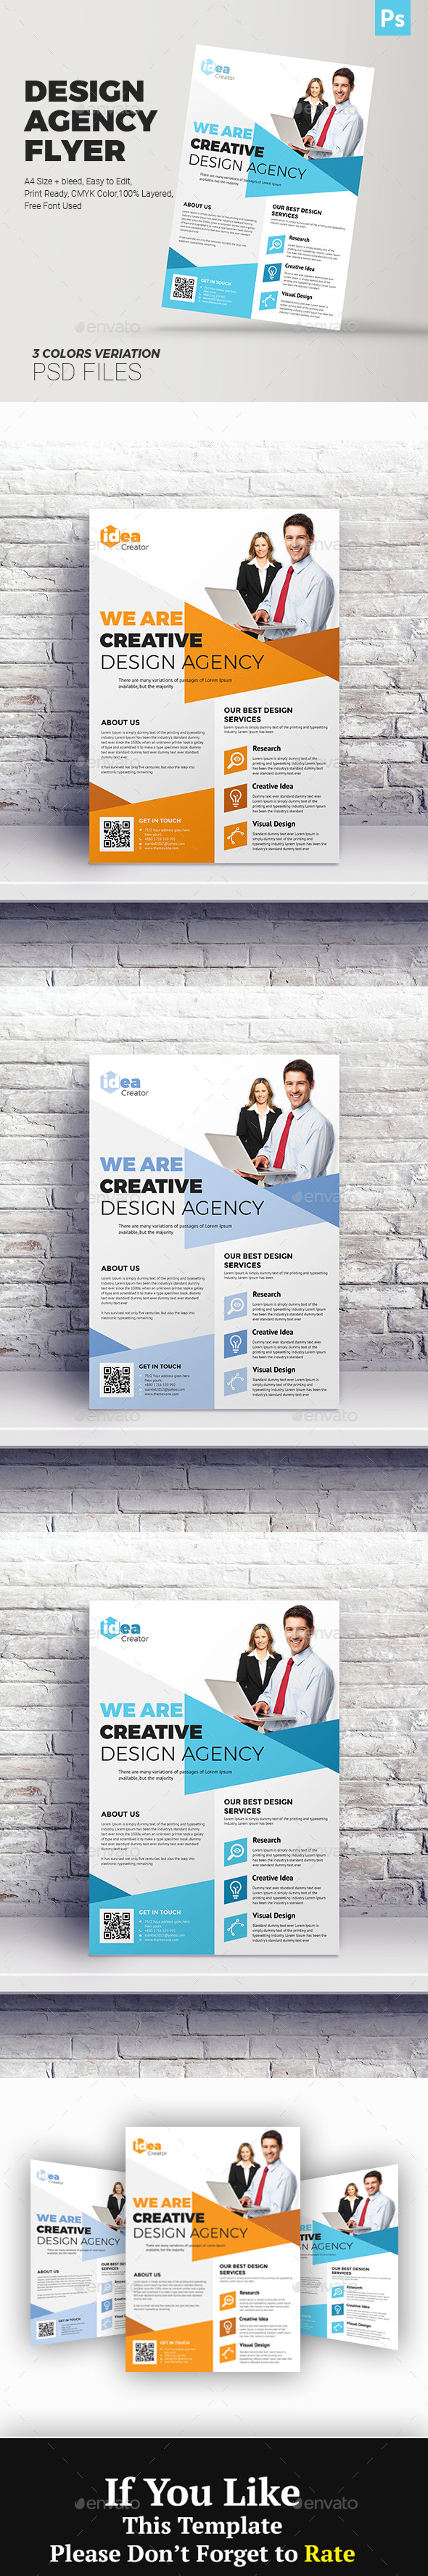 Design Business Agency Flyer - Corporate Flyers